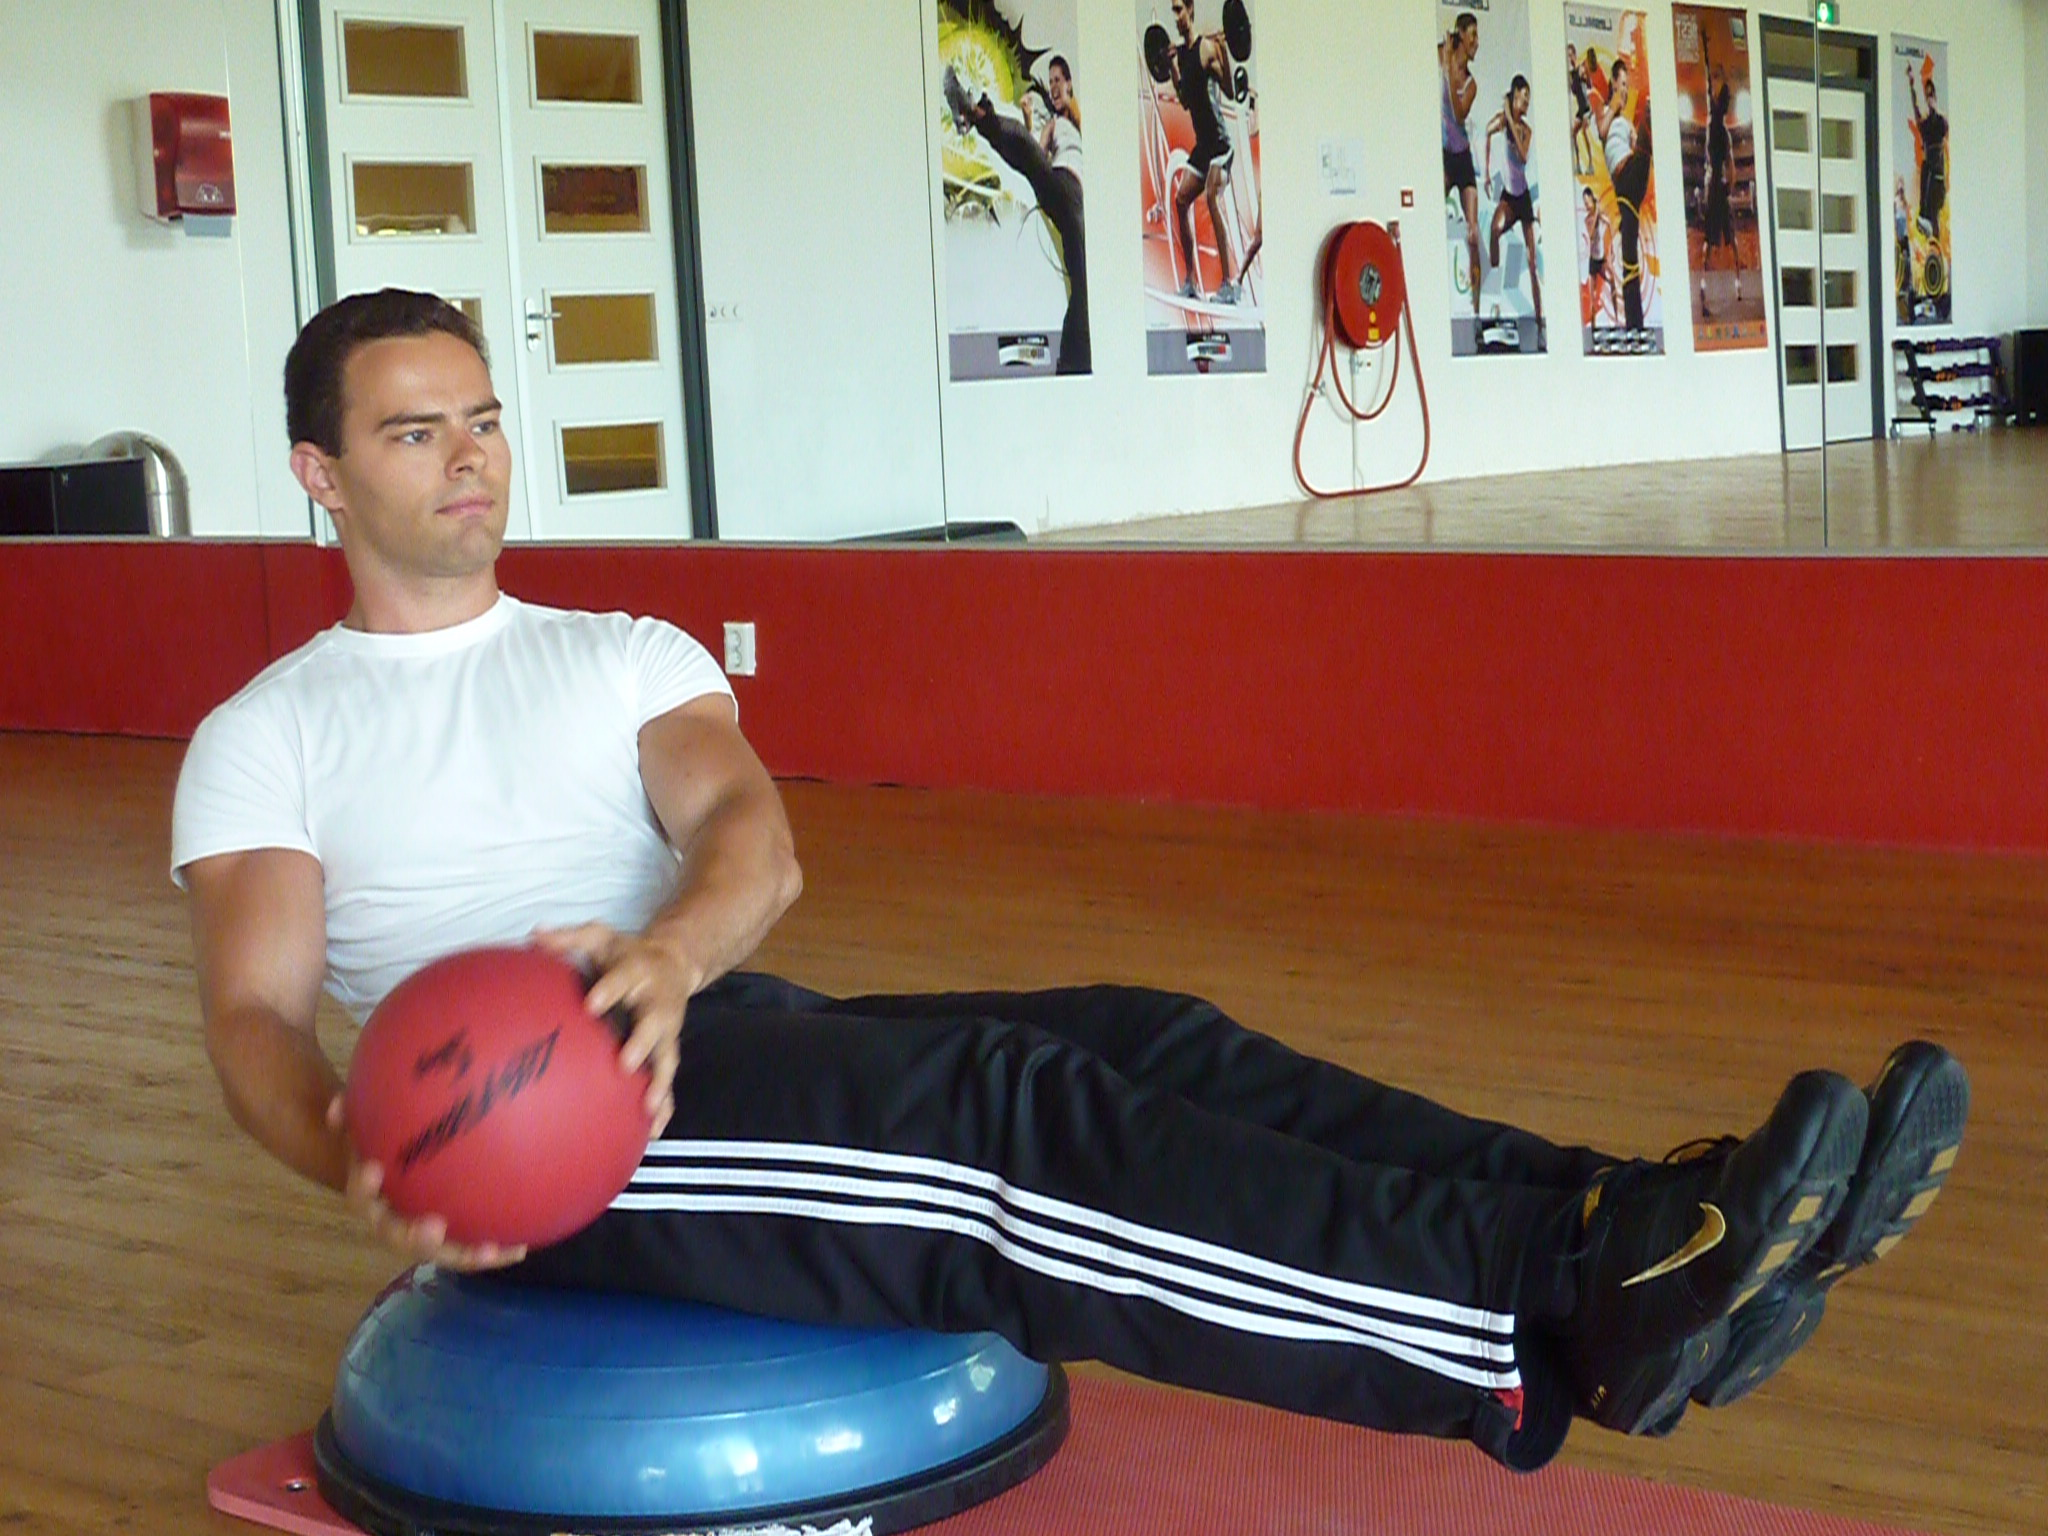 82908754685d Core stability training on unstable devices